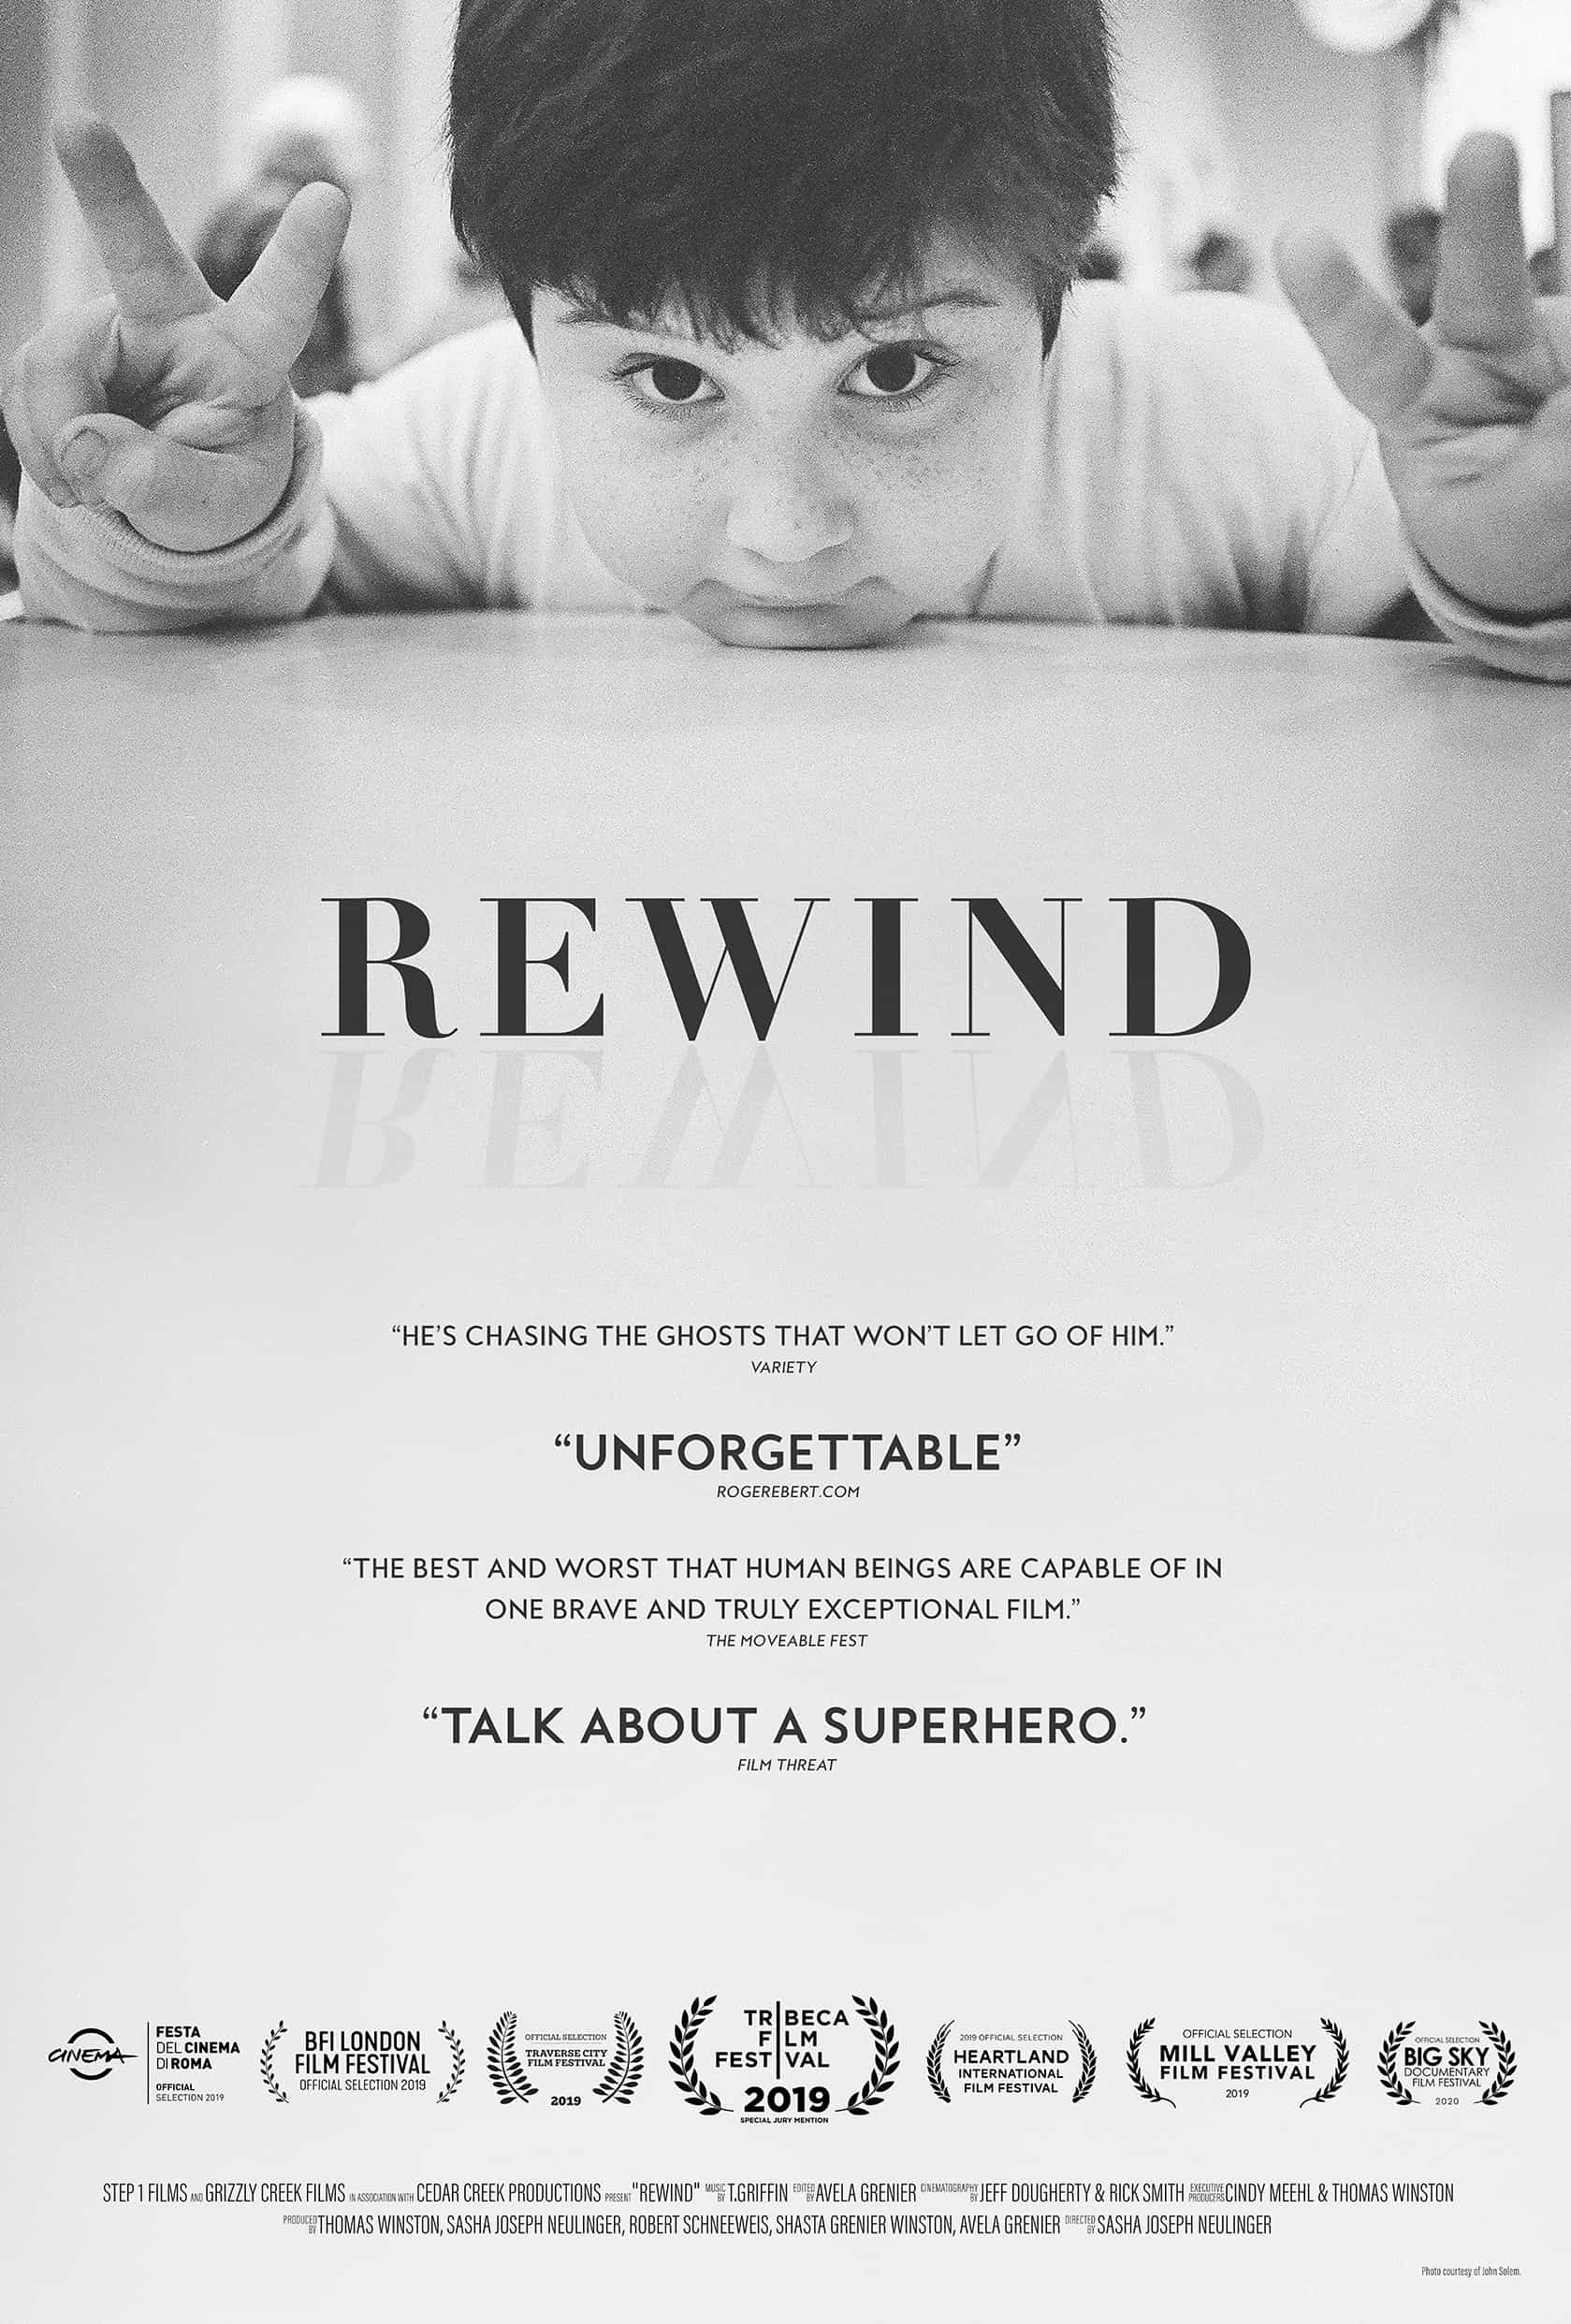 Rewind Digital movie poster